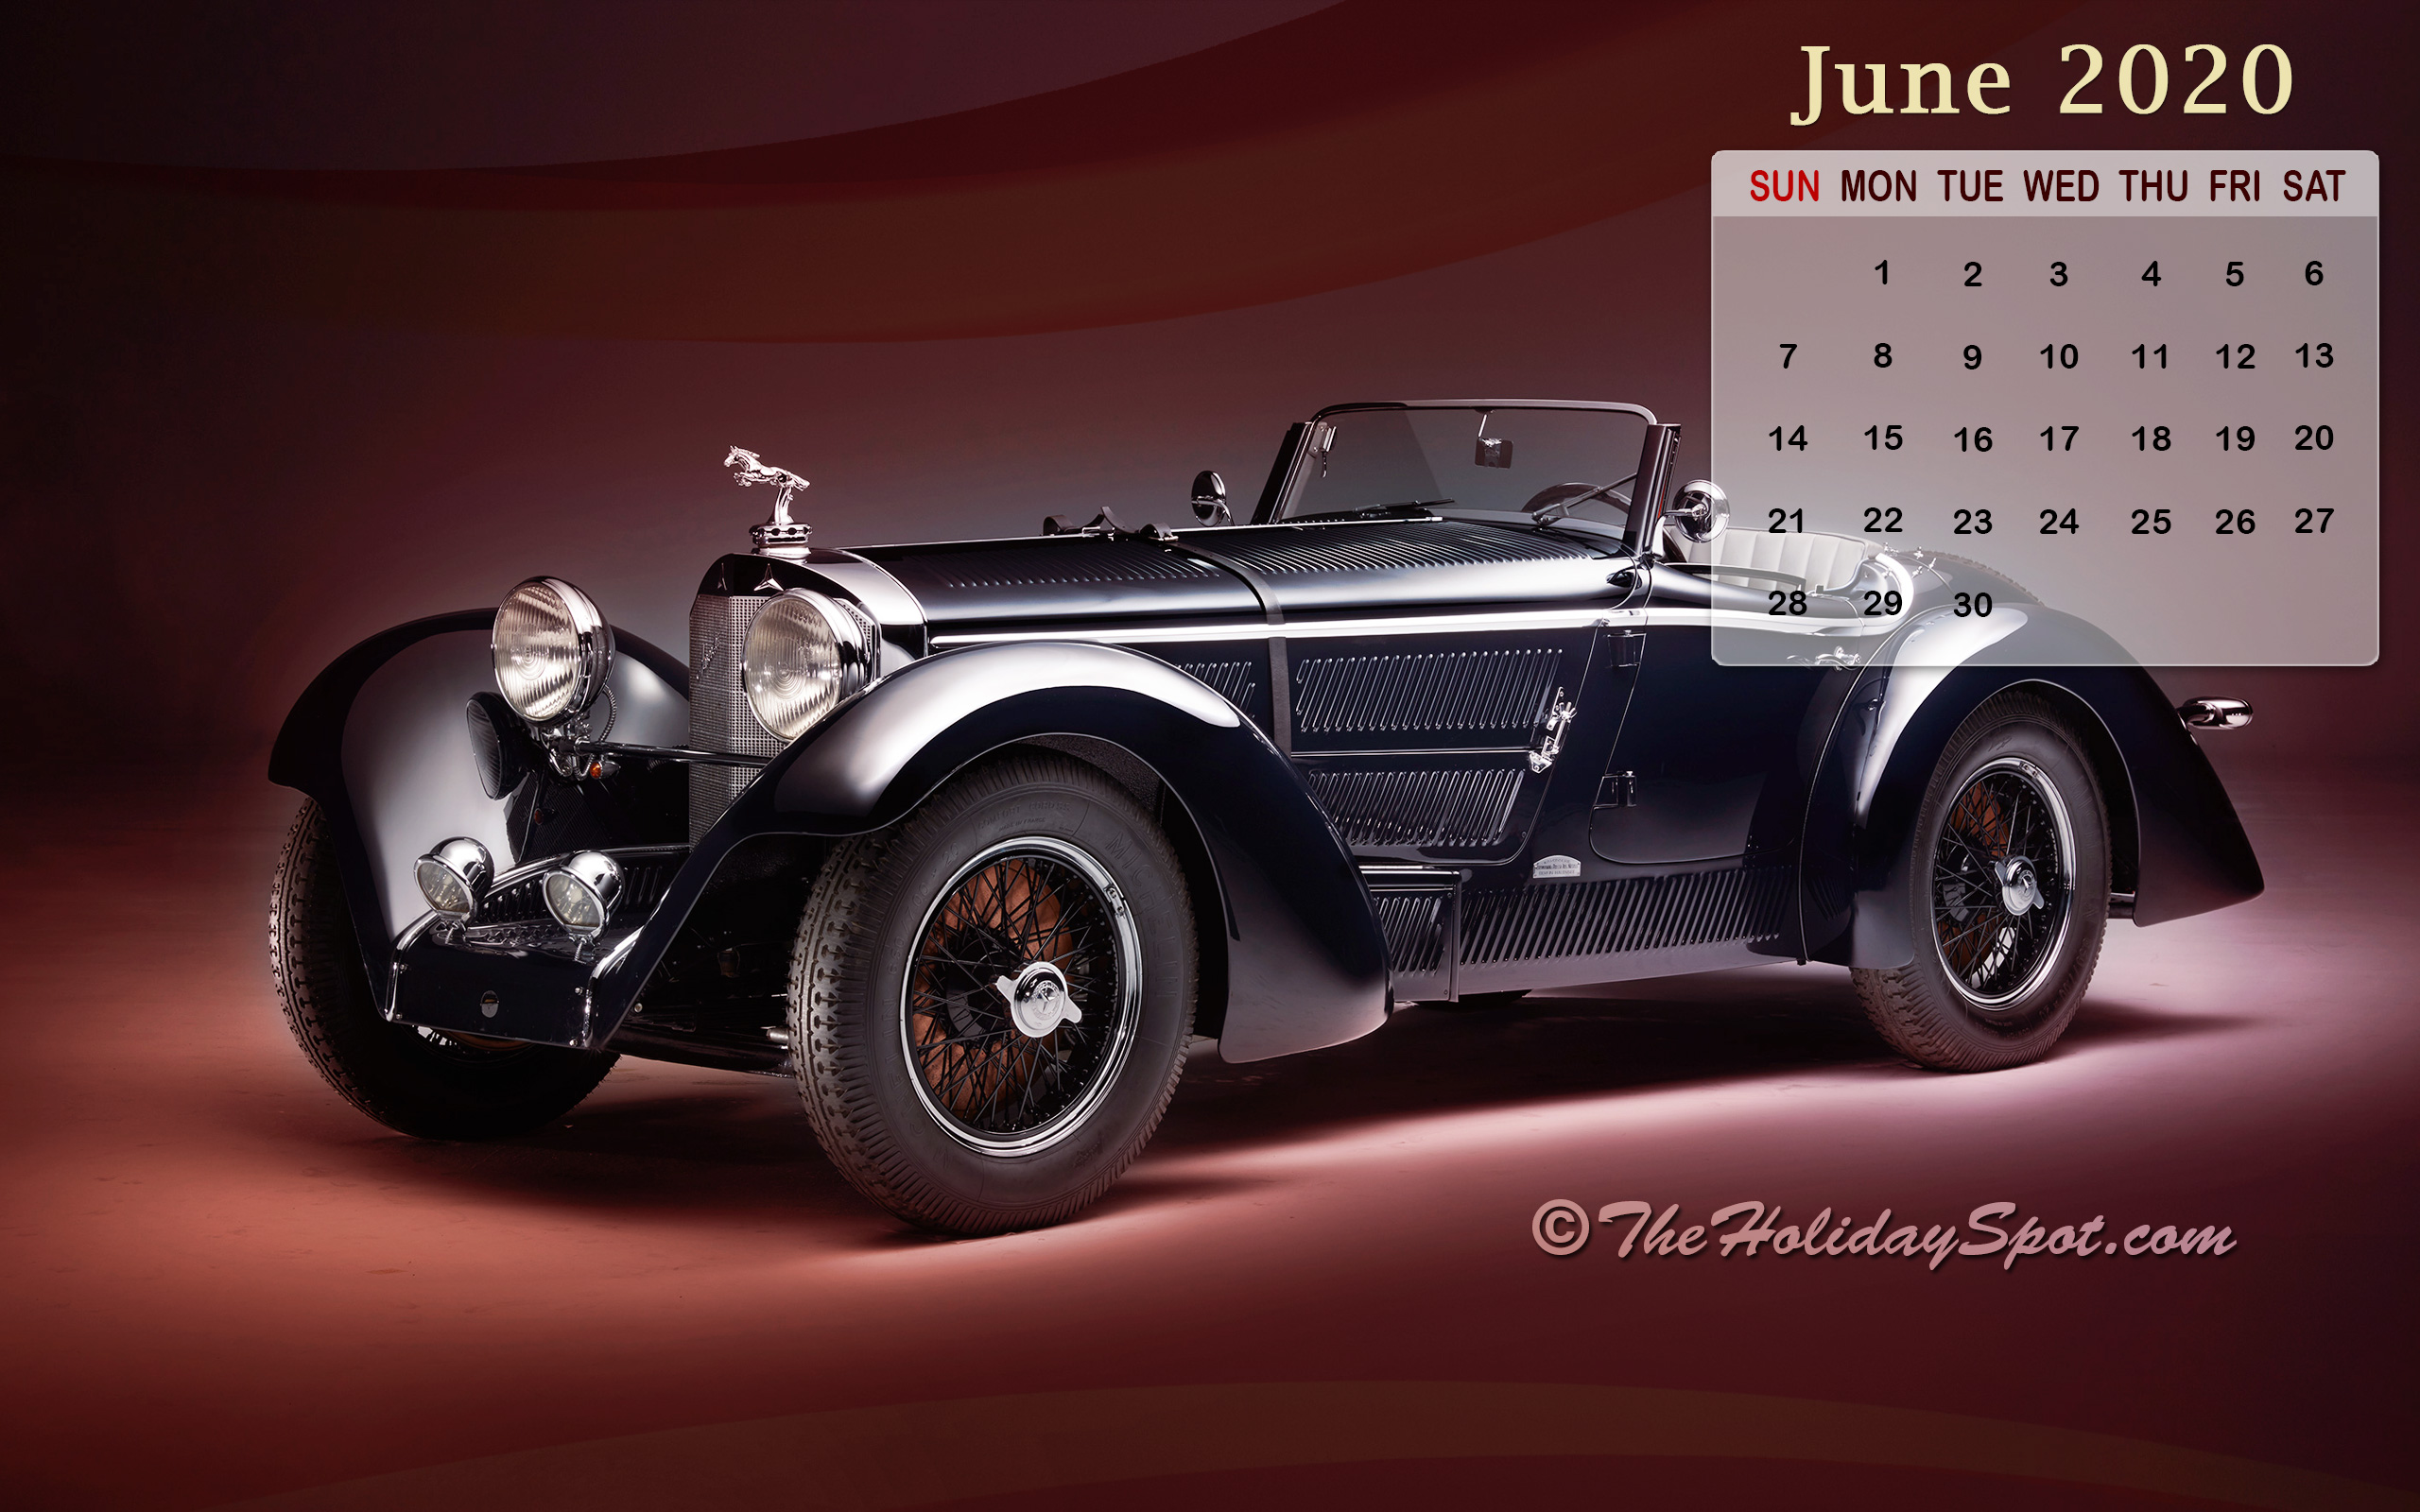 Month wise Calender Wallpapers 2020